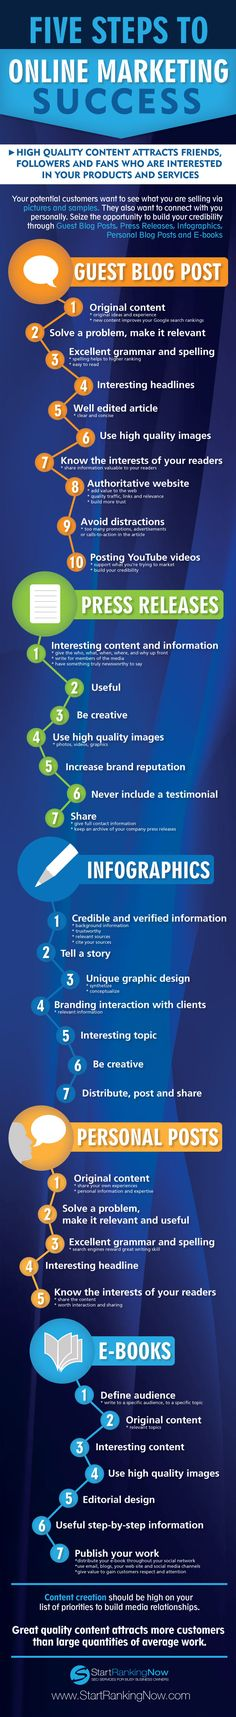 Content creation should be high on your list of priorities to build media relationships. Great quality content attracts more customers than large quantities of average work. Here is a great infographic which describes 5 steps you can take to make your online marketing a success.   http://www.digitalinformationworld.com/